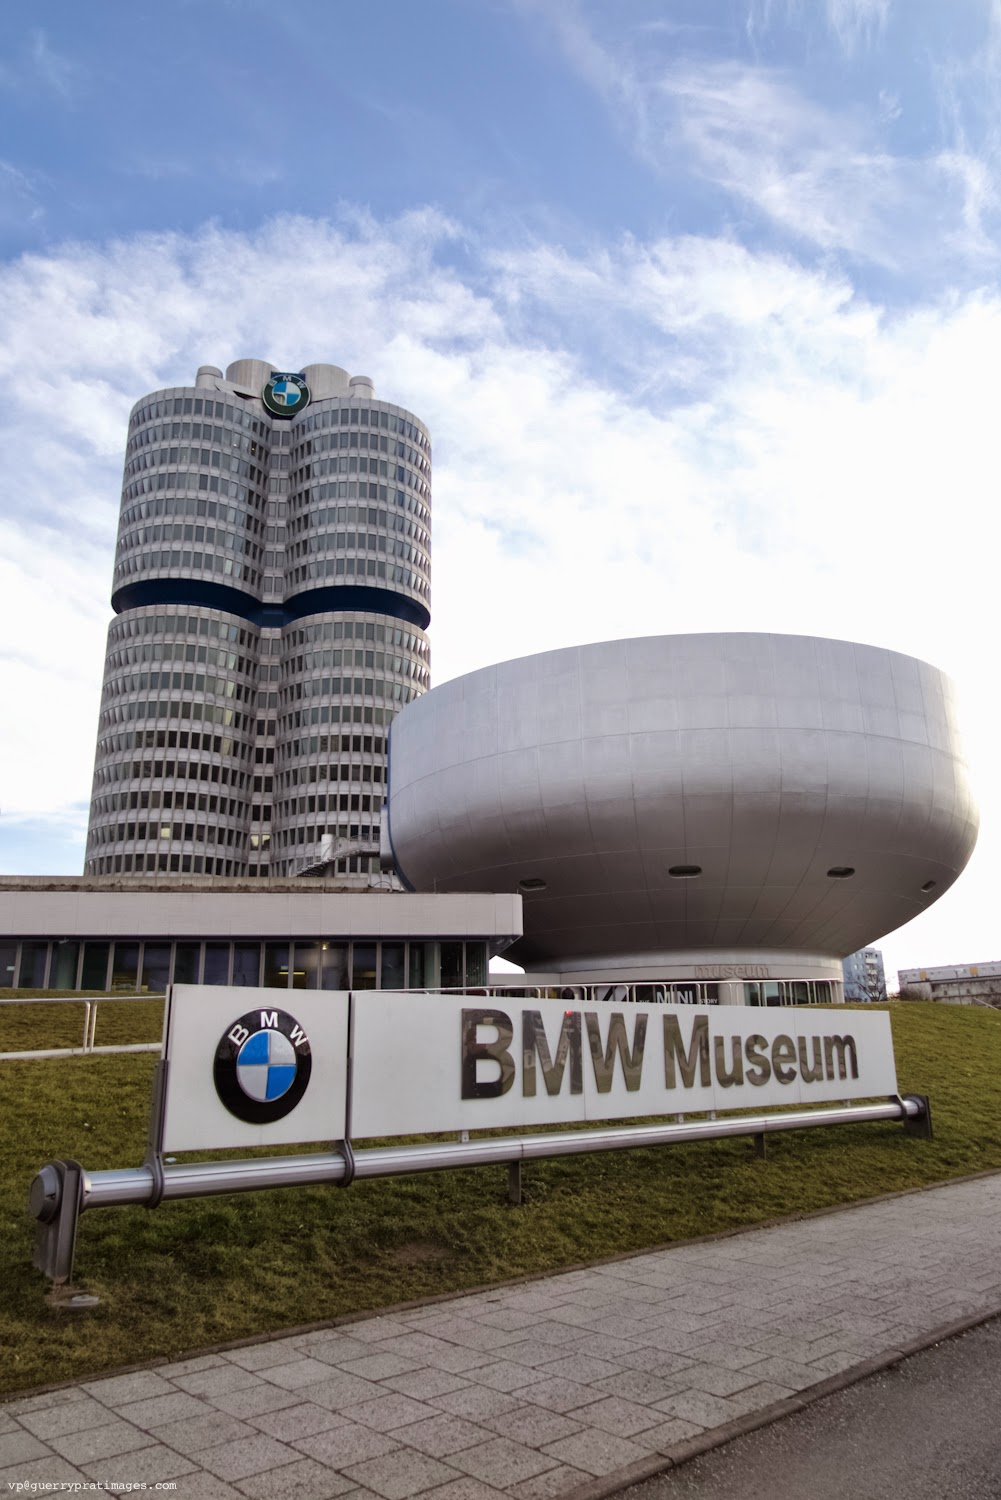 southsiders two days in munich the bmw museum. Black Bedroom Furniture Sets. Home Design Ideas